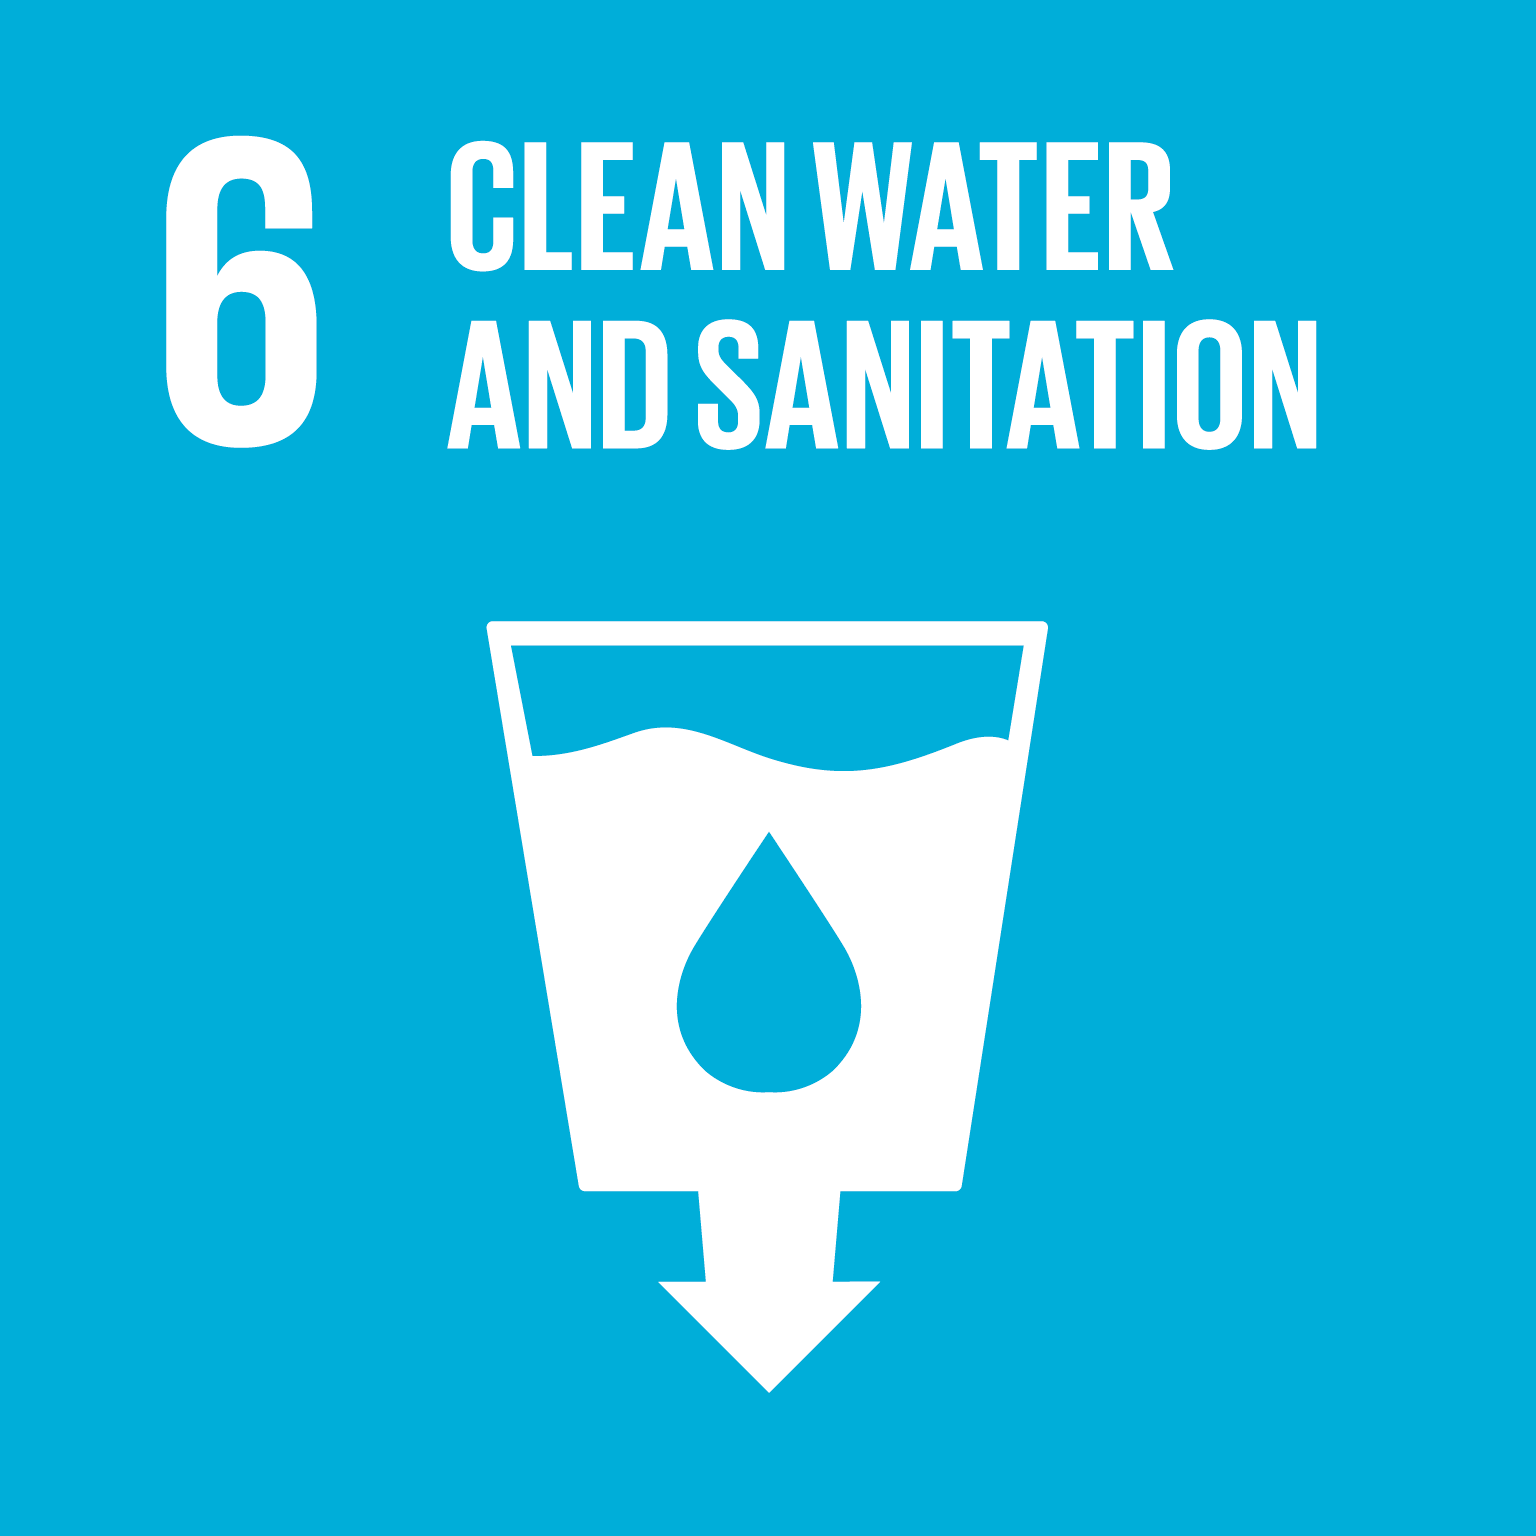 Clean water and sanitation logo.